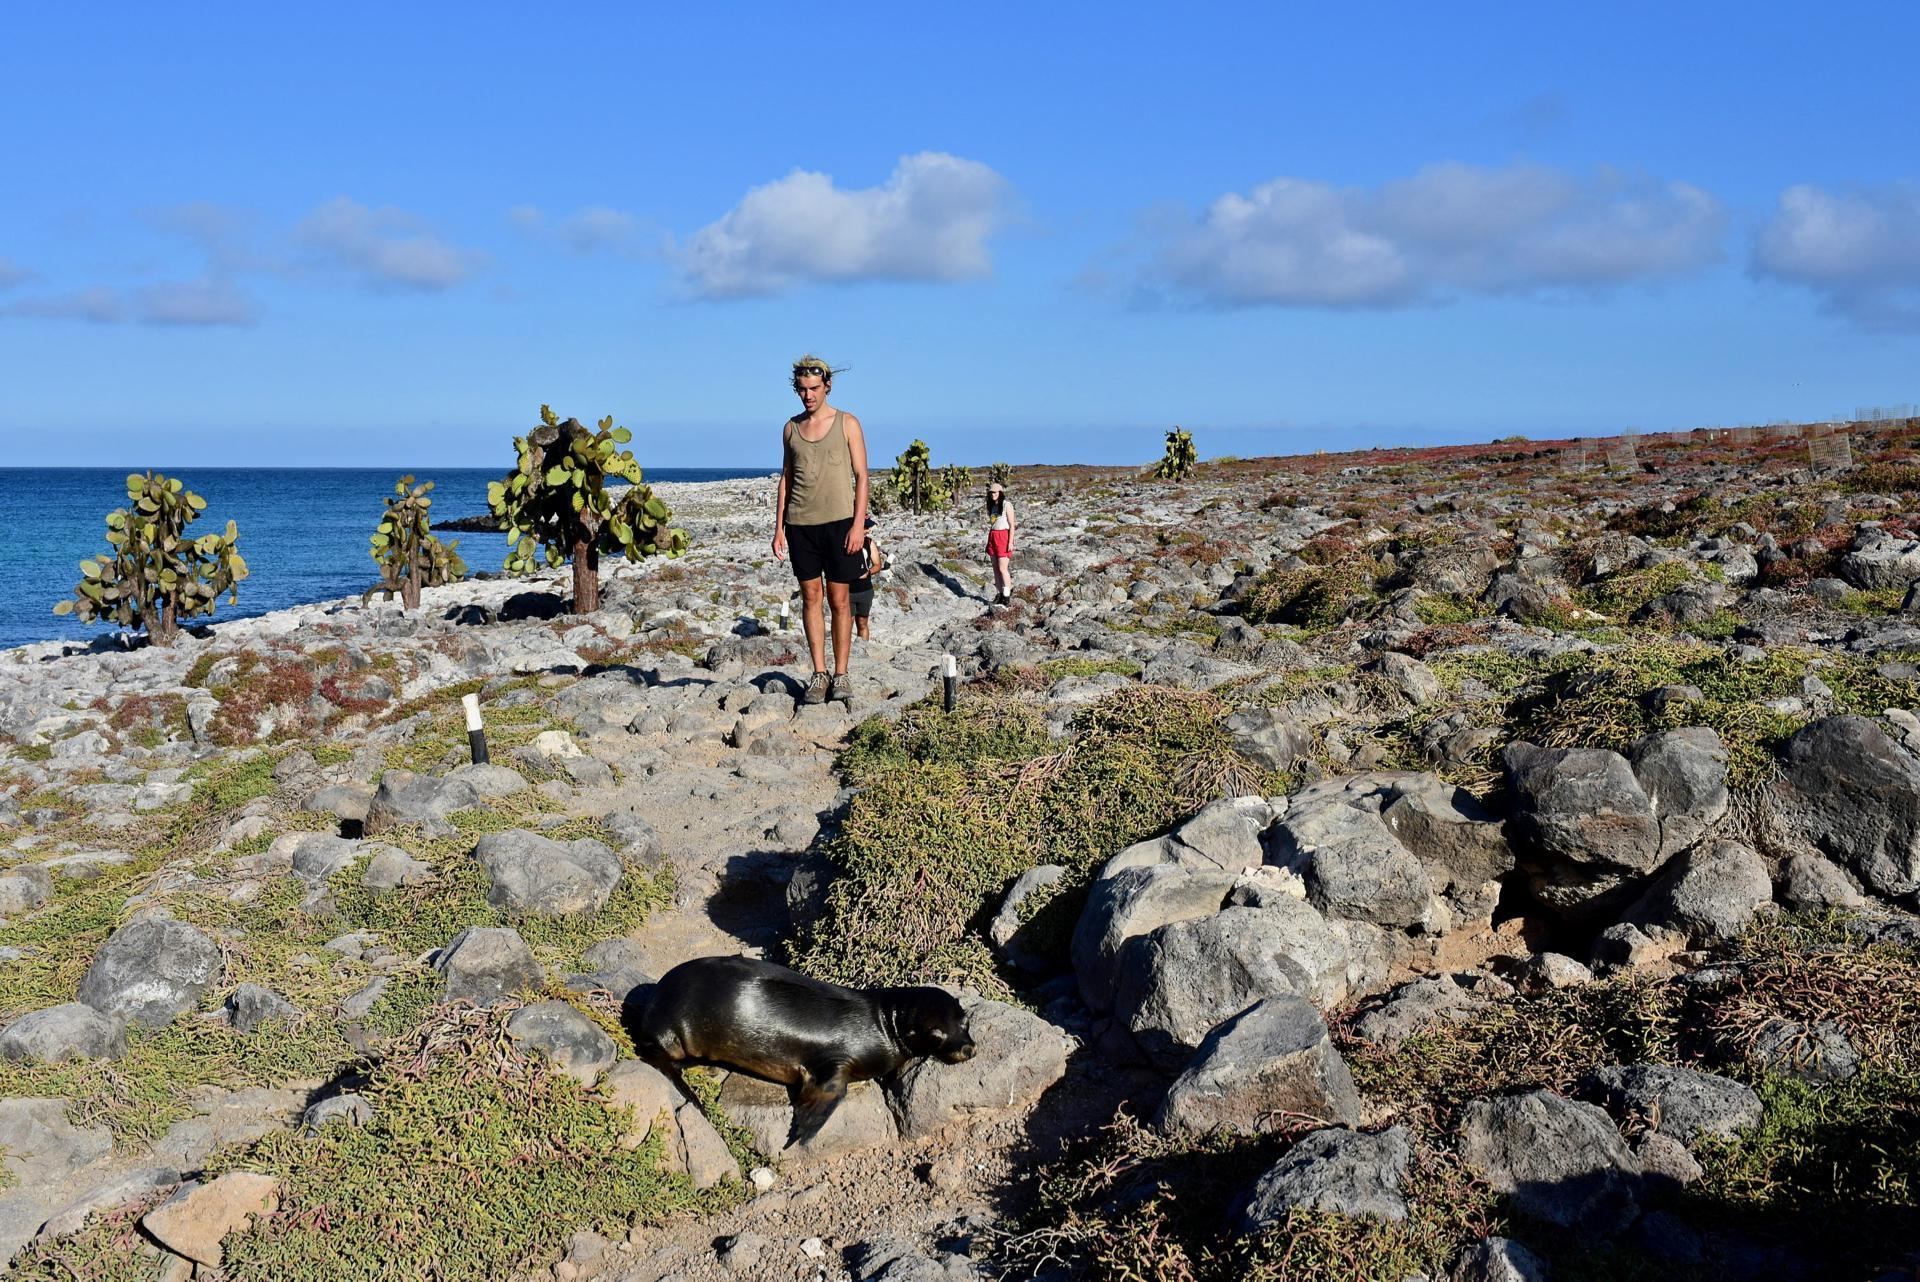 Seelöwen auf South Plaza Galapagos Inseln